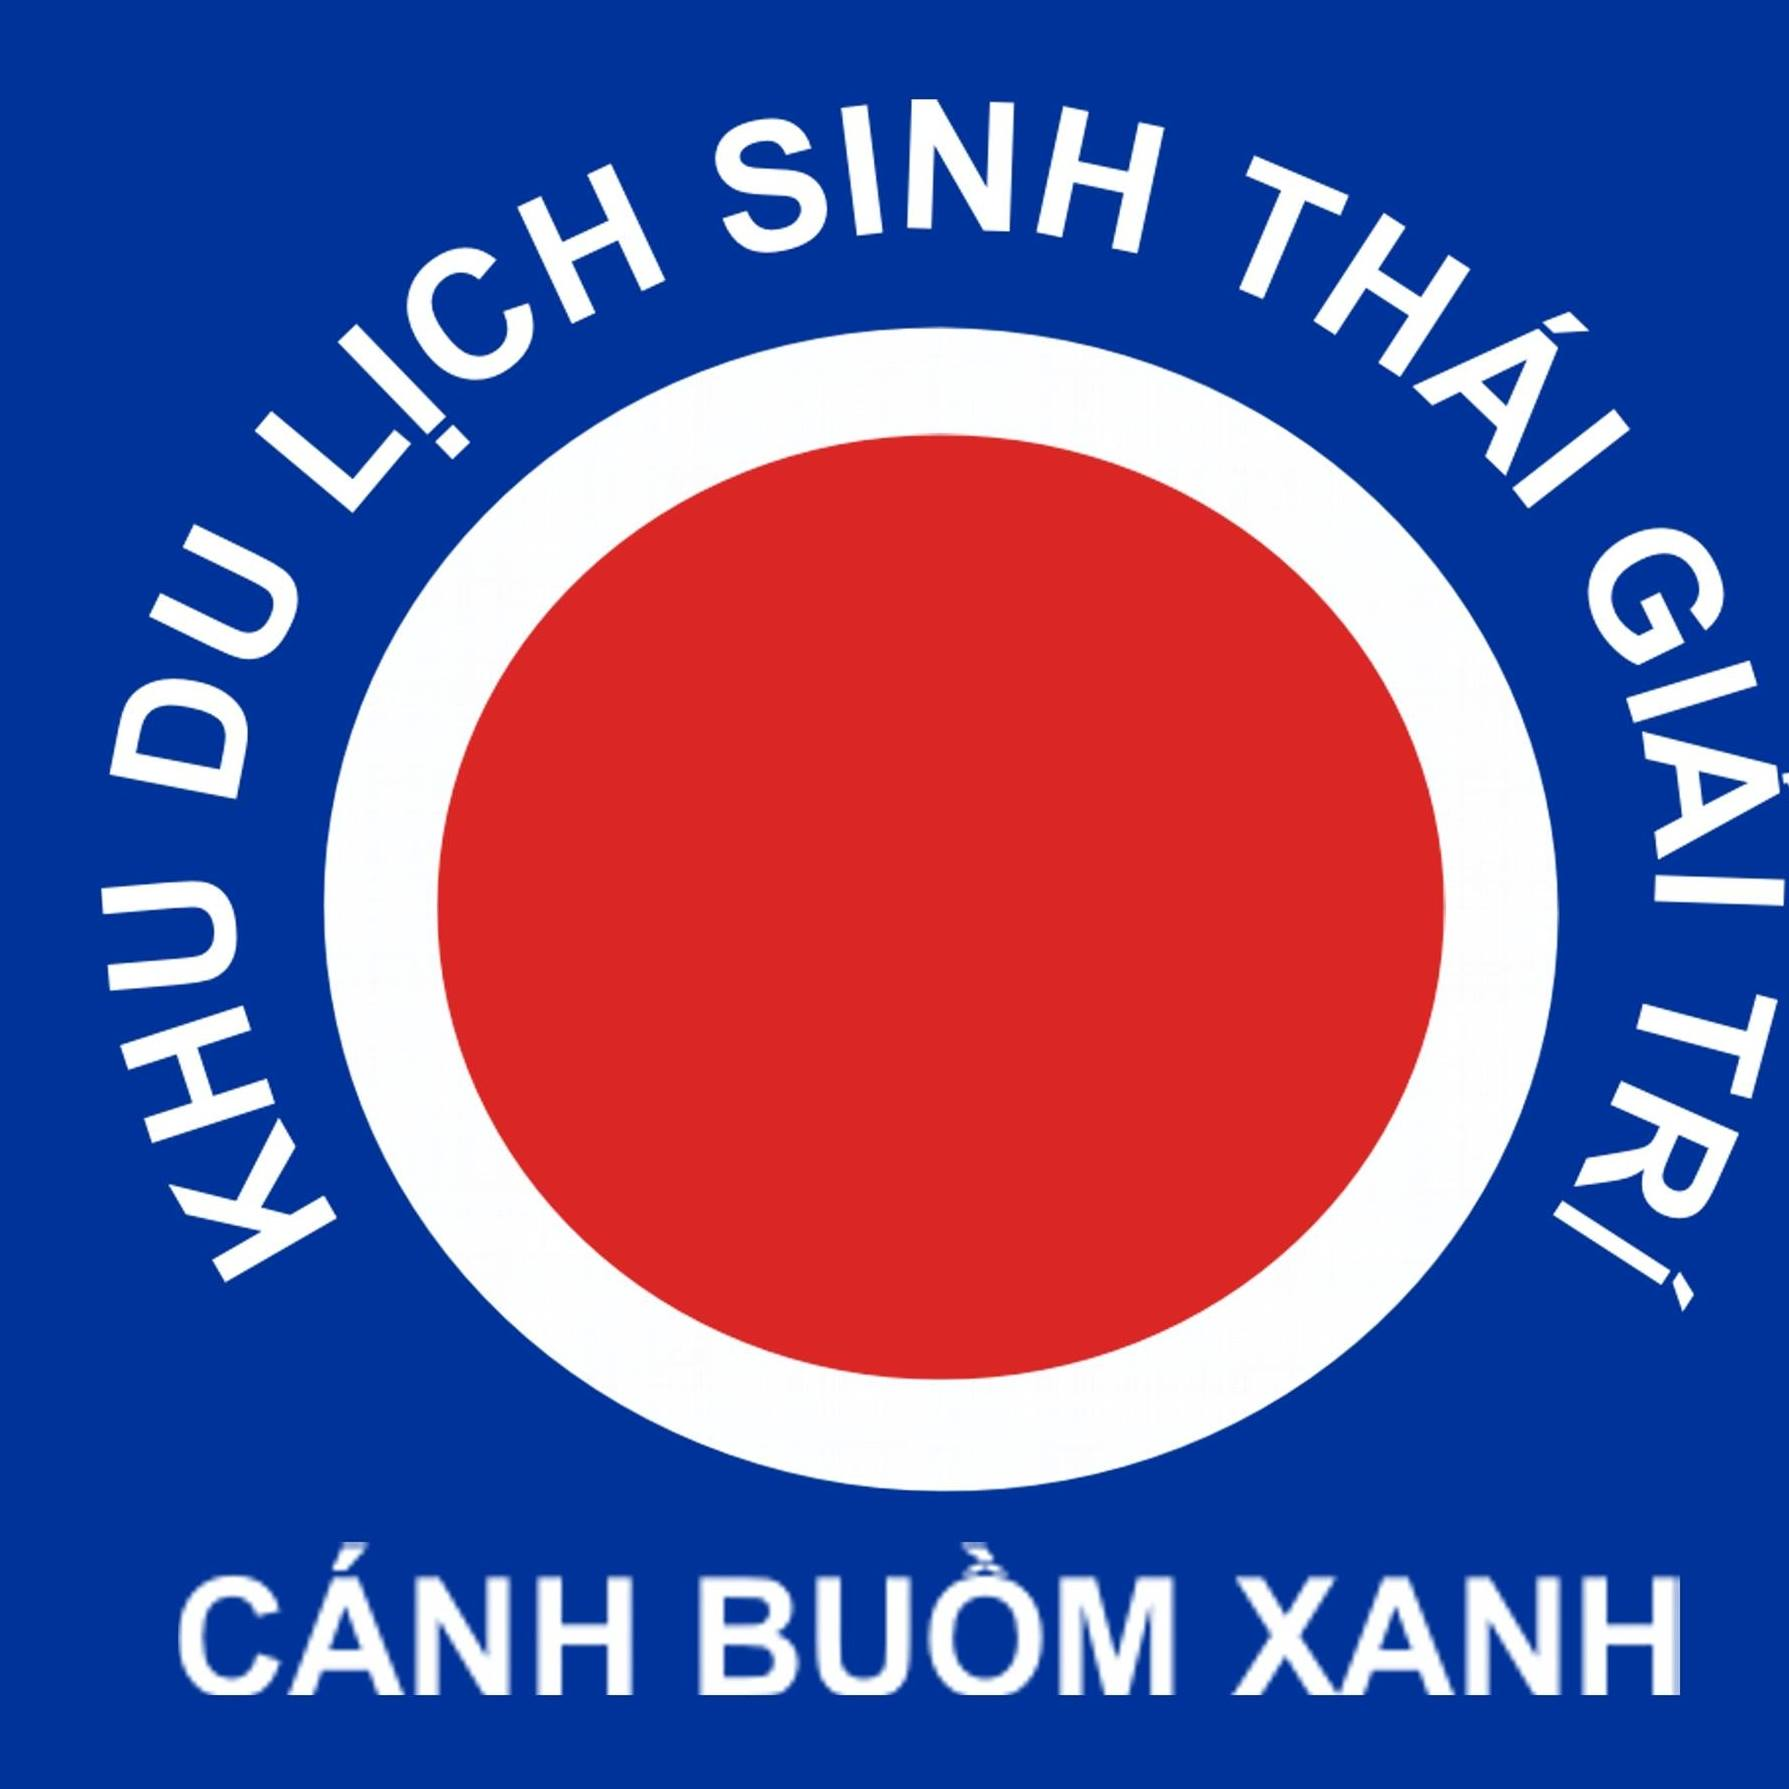 Canh Buom Xanh Sinh Thai